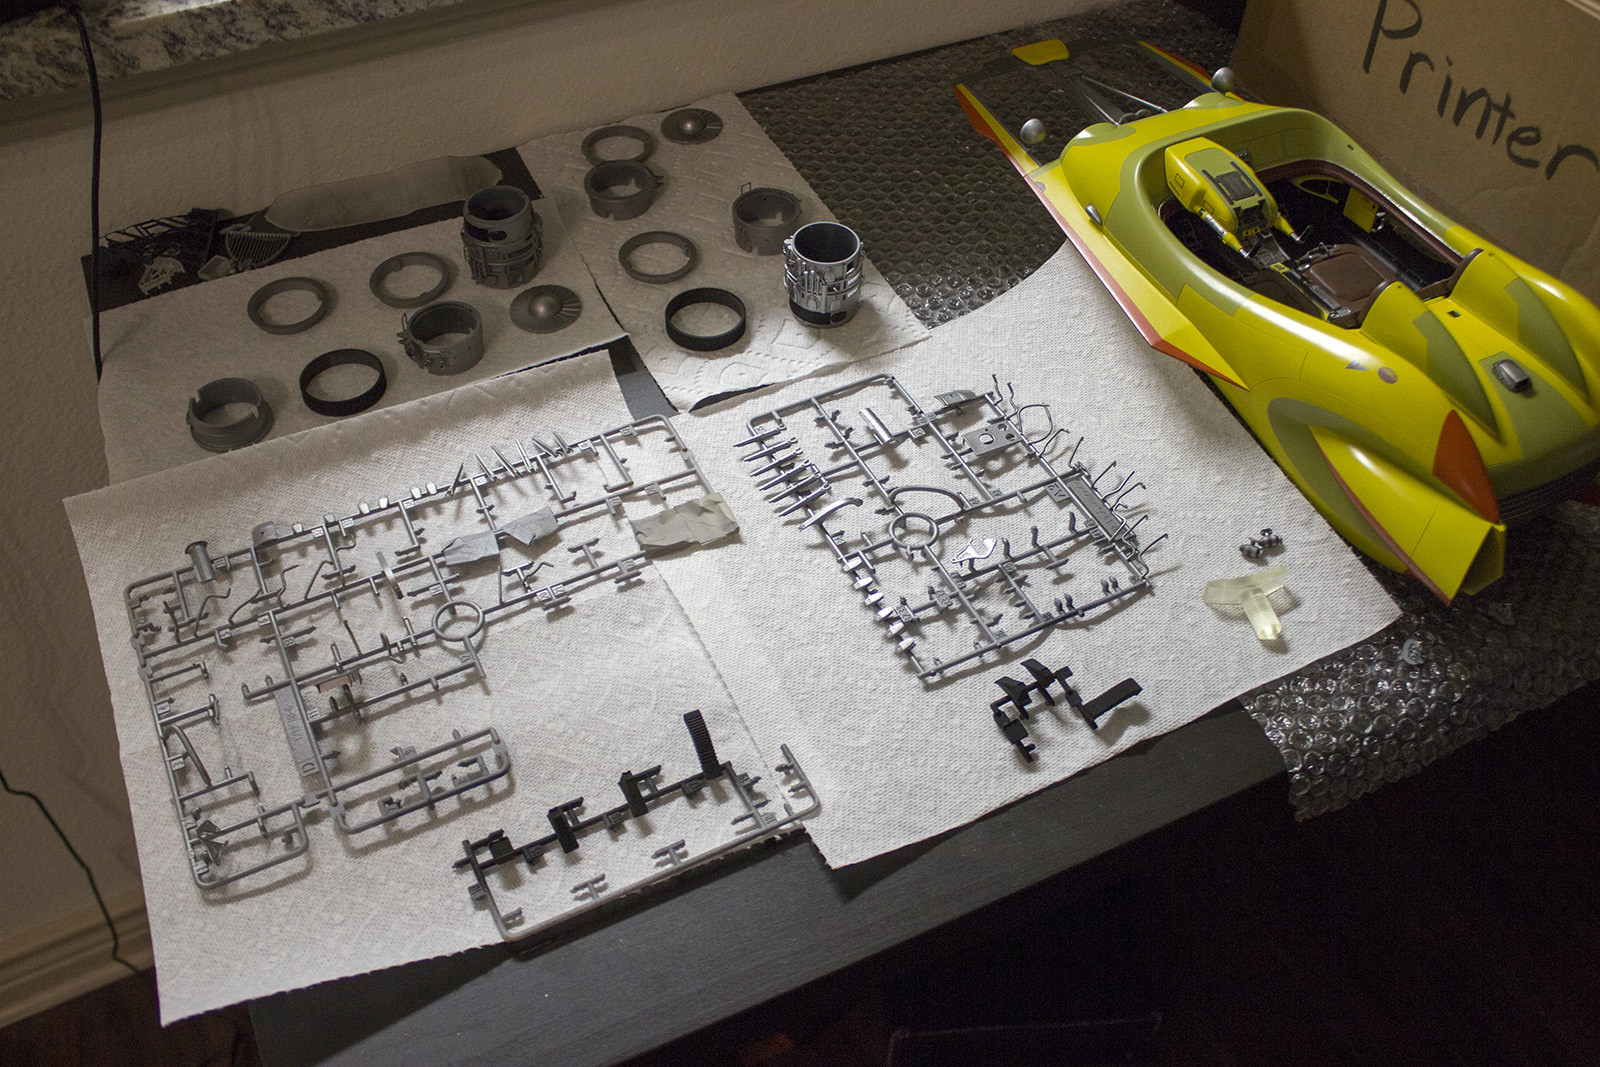 The main body is finished and the parts for the engines are clean and laid out to be assembled.